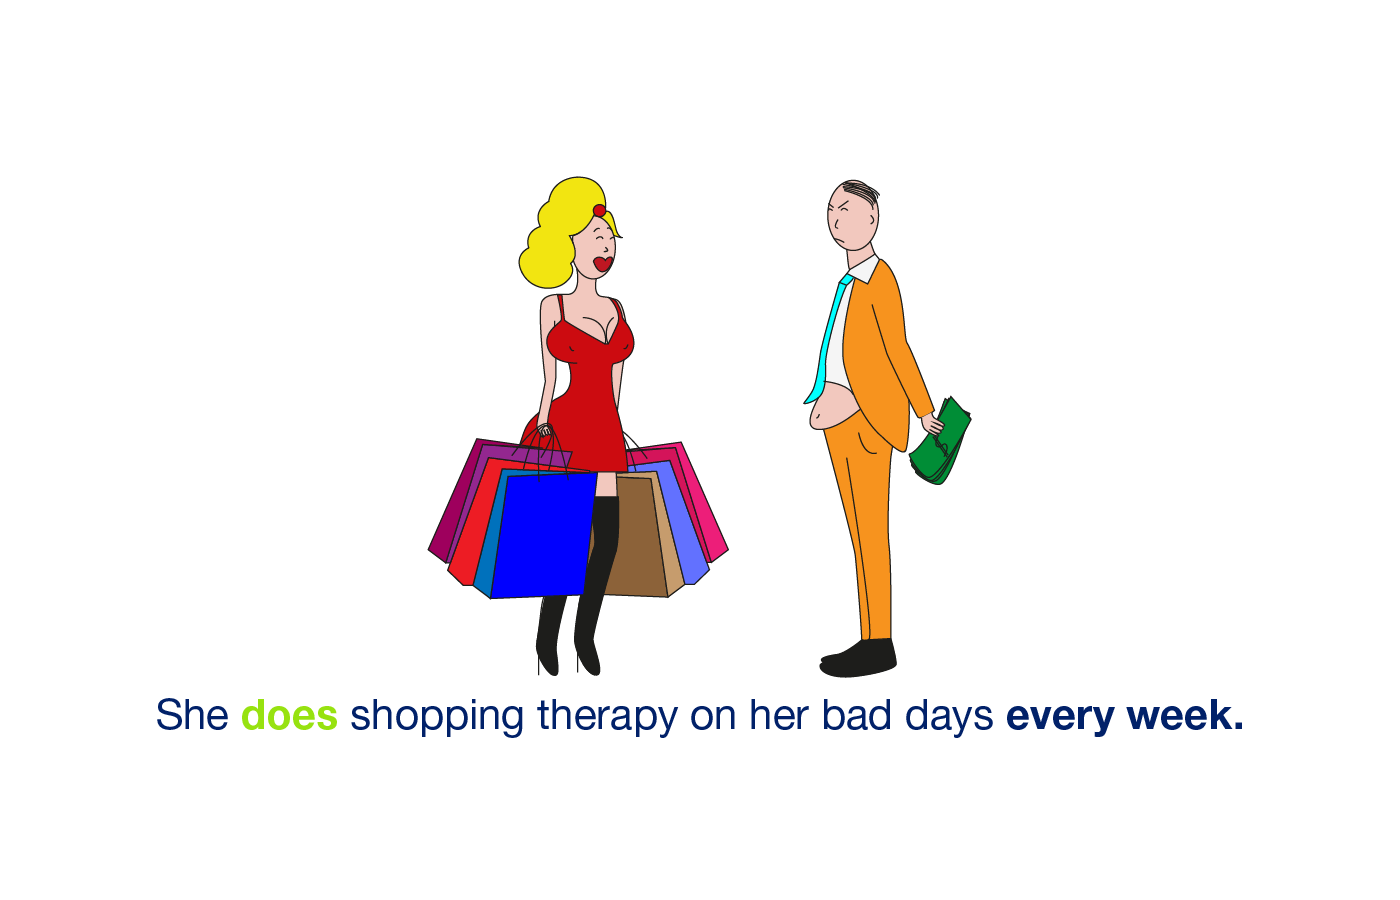 she goes shopping every week. Present simple illustrated.